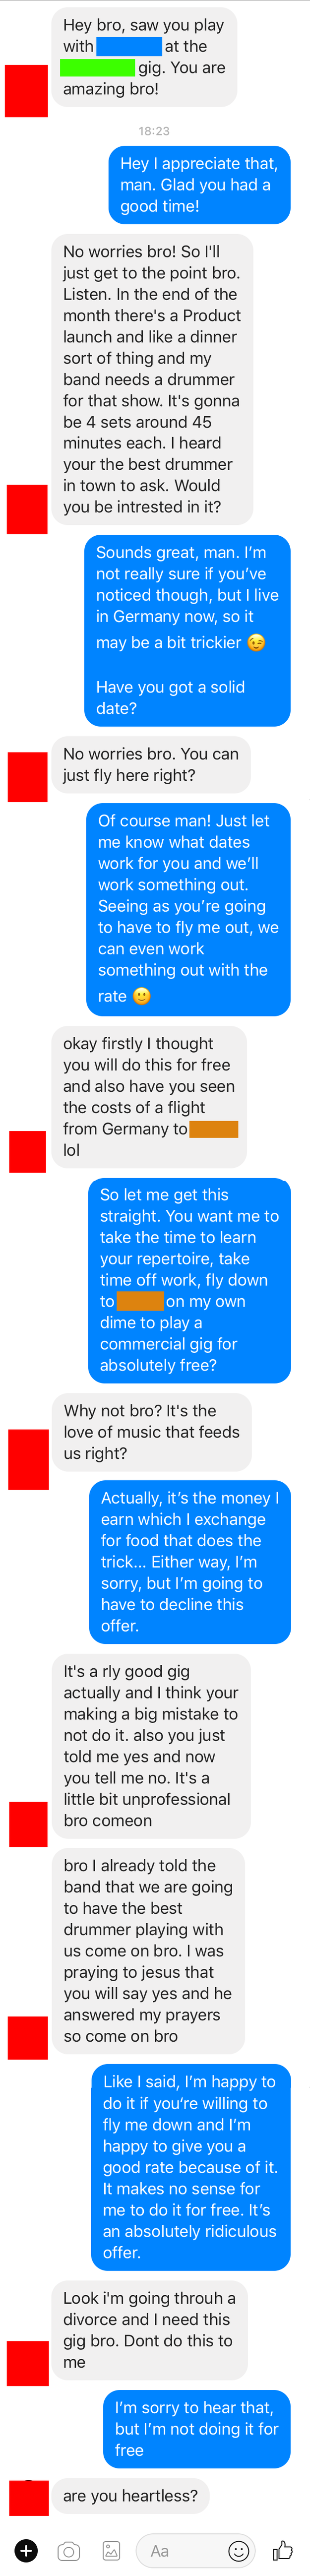 The person who wanted a musician to pay for his own flight in order to play a gig for free.